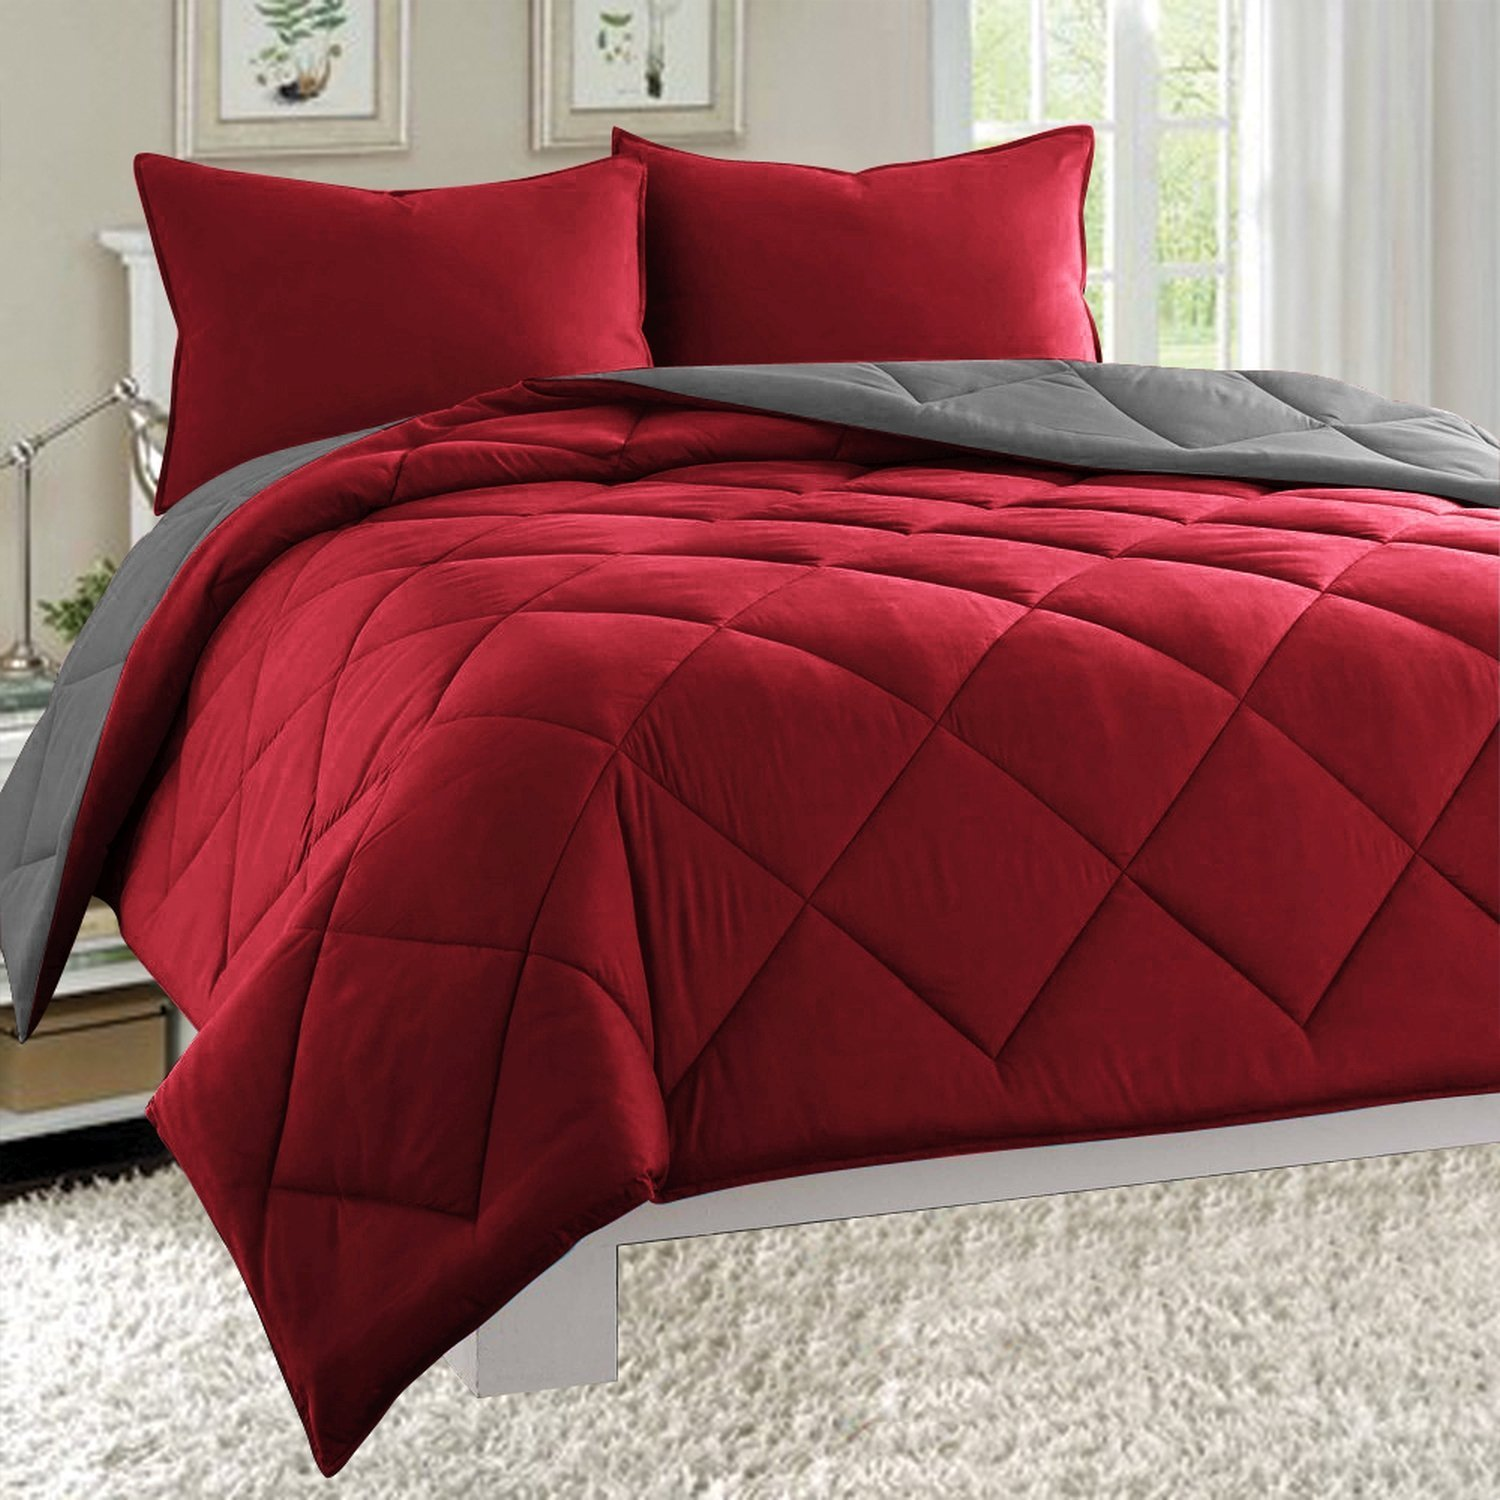 with ease size grey style piece burgundy xl comforter bedding sets and set reversible twin teen girls boys